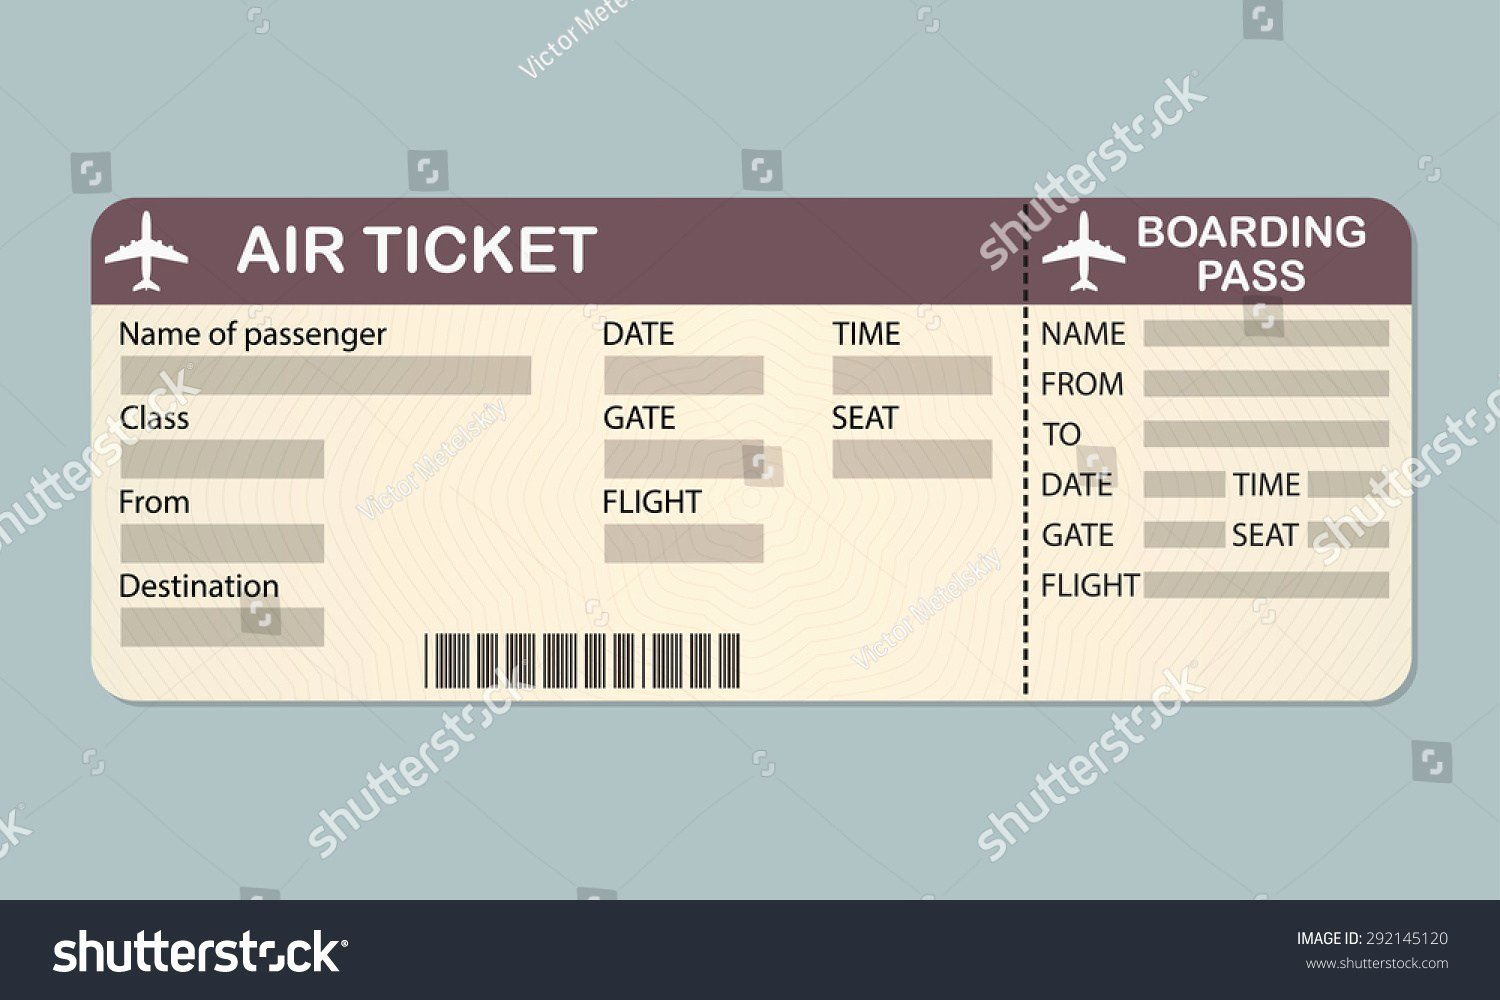 Fake Airline Ticket Template Beautiful Fake Airline Ticket Template